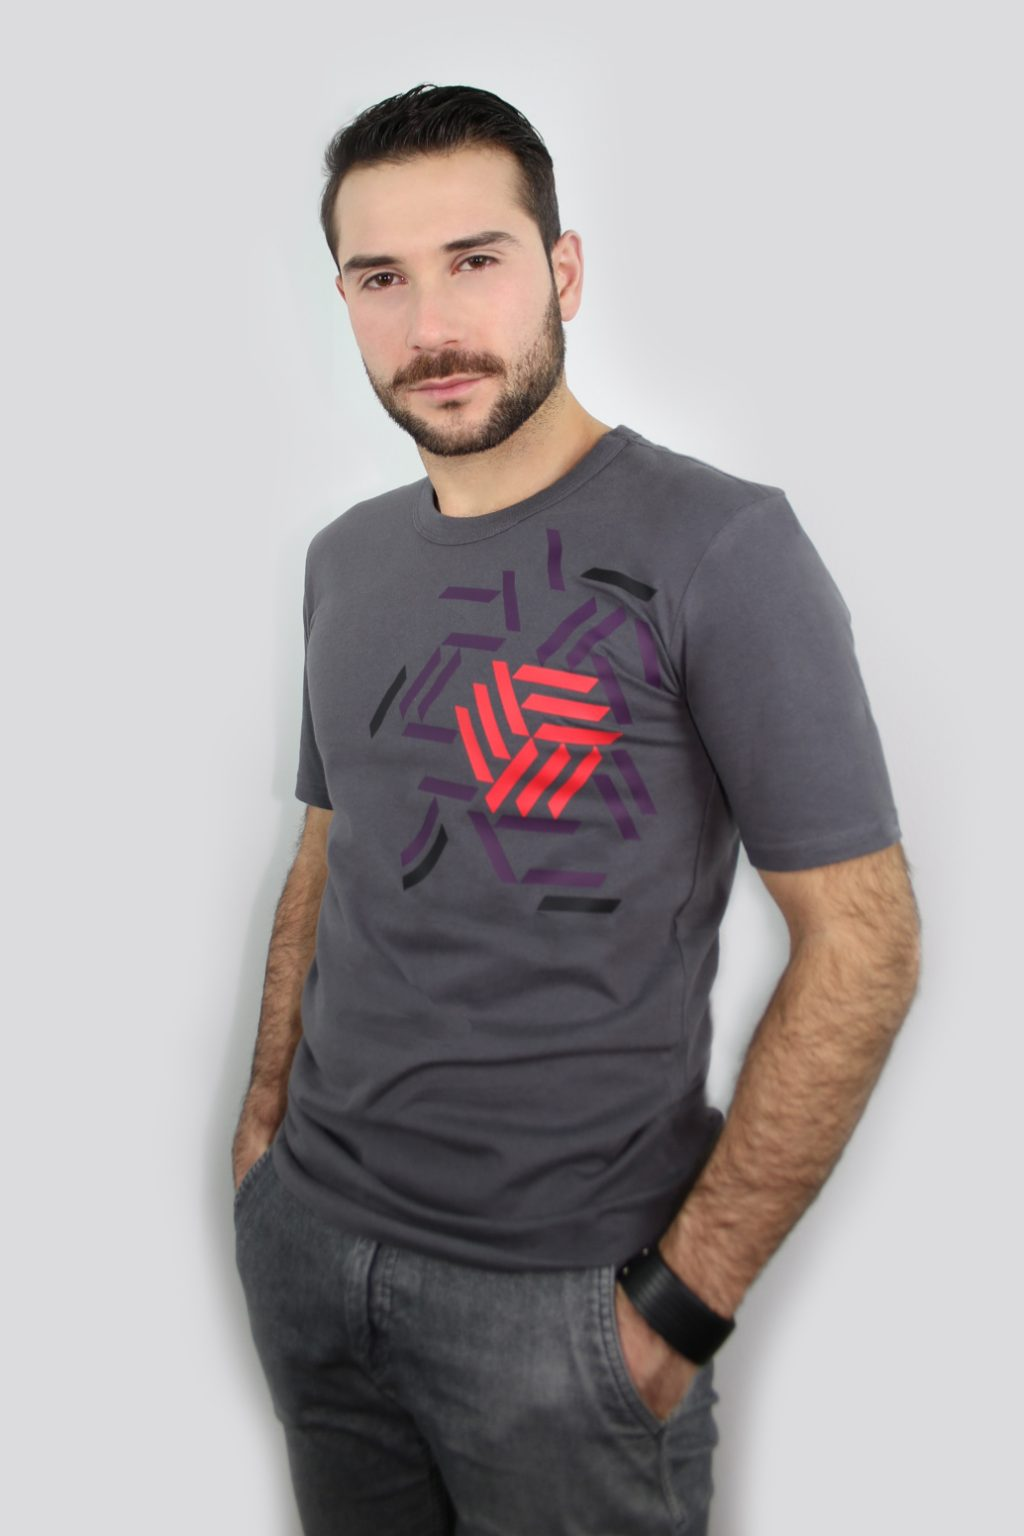 conception t-shirt gianluca Sgalippa collection znak